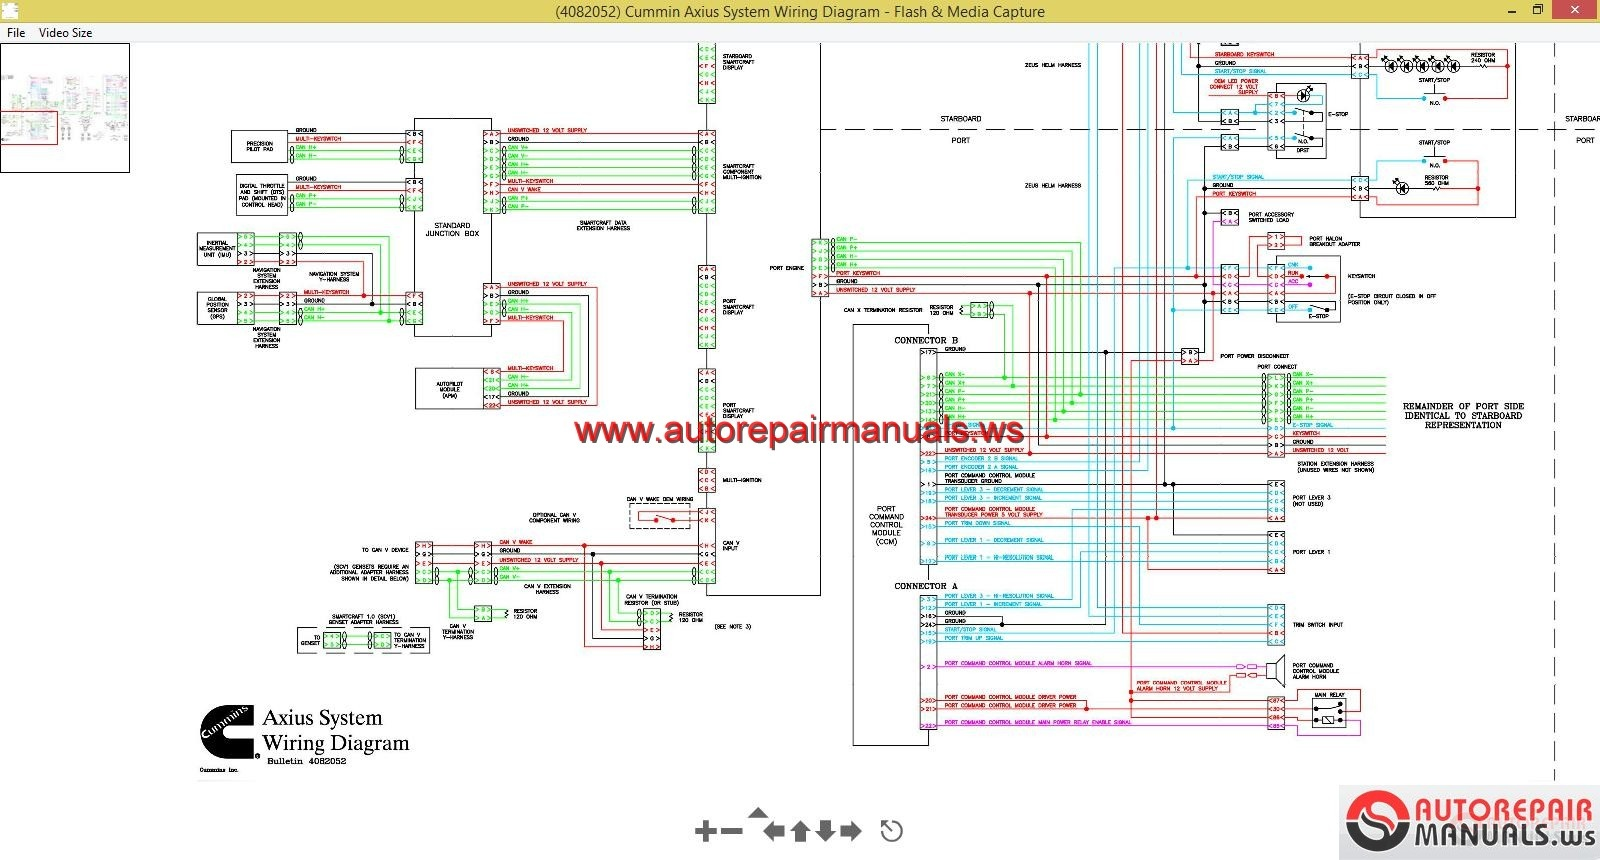 Cummin_Axius_System_Wiring_Diagram cummin axius system wiring diagram auto repair manual forum mitsubishi fuso wiring diagram at readyjetset.co